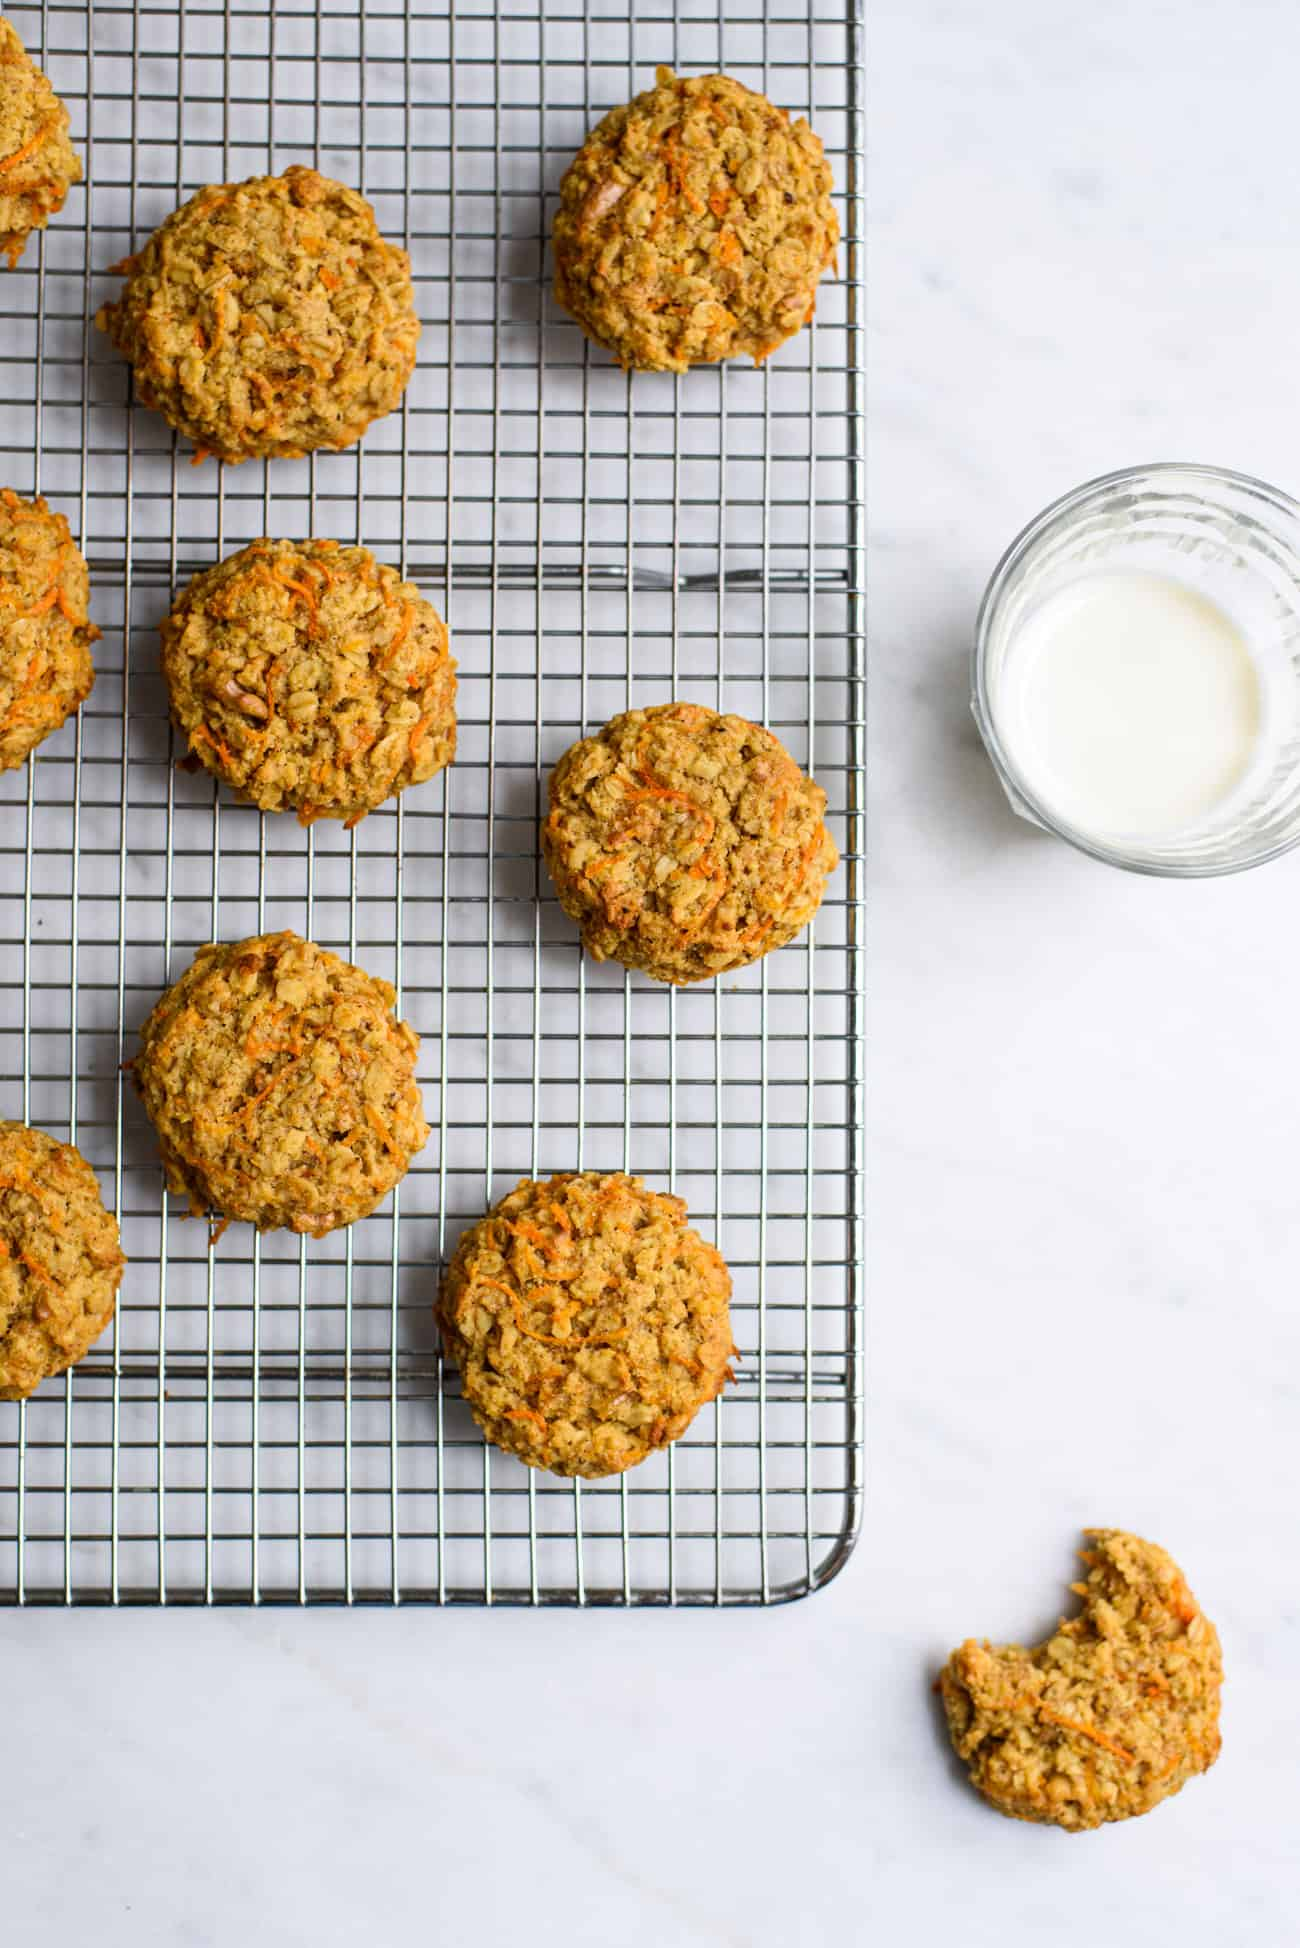 Carrot oatmeal cookies on a cooling rack next to a glass of milk